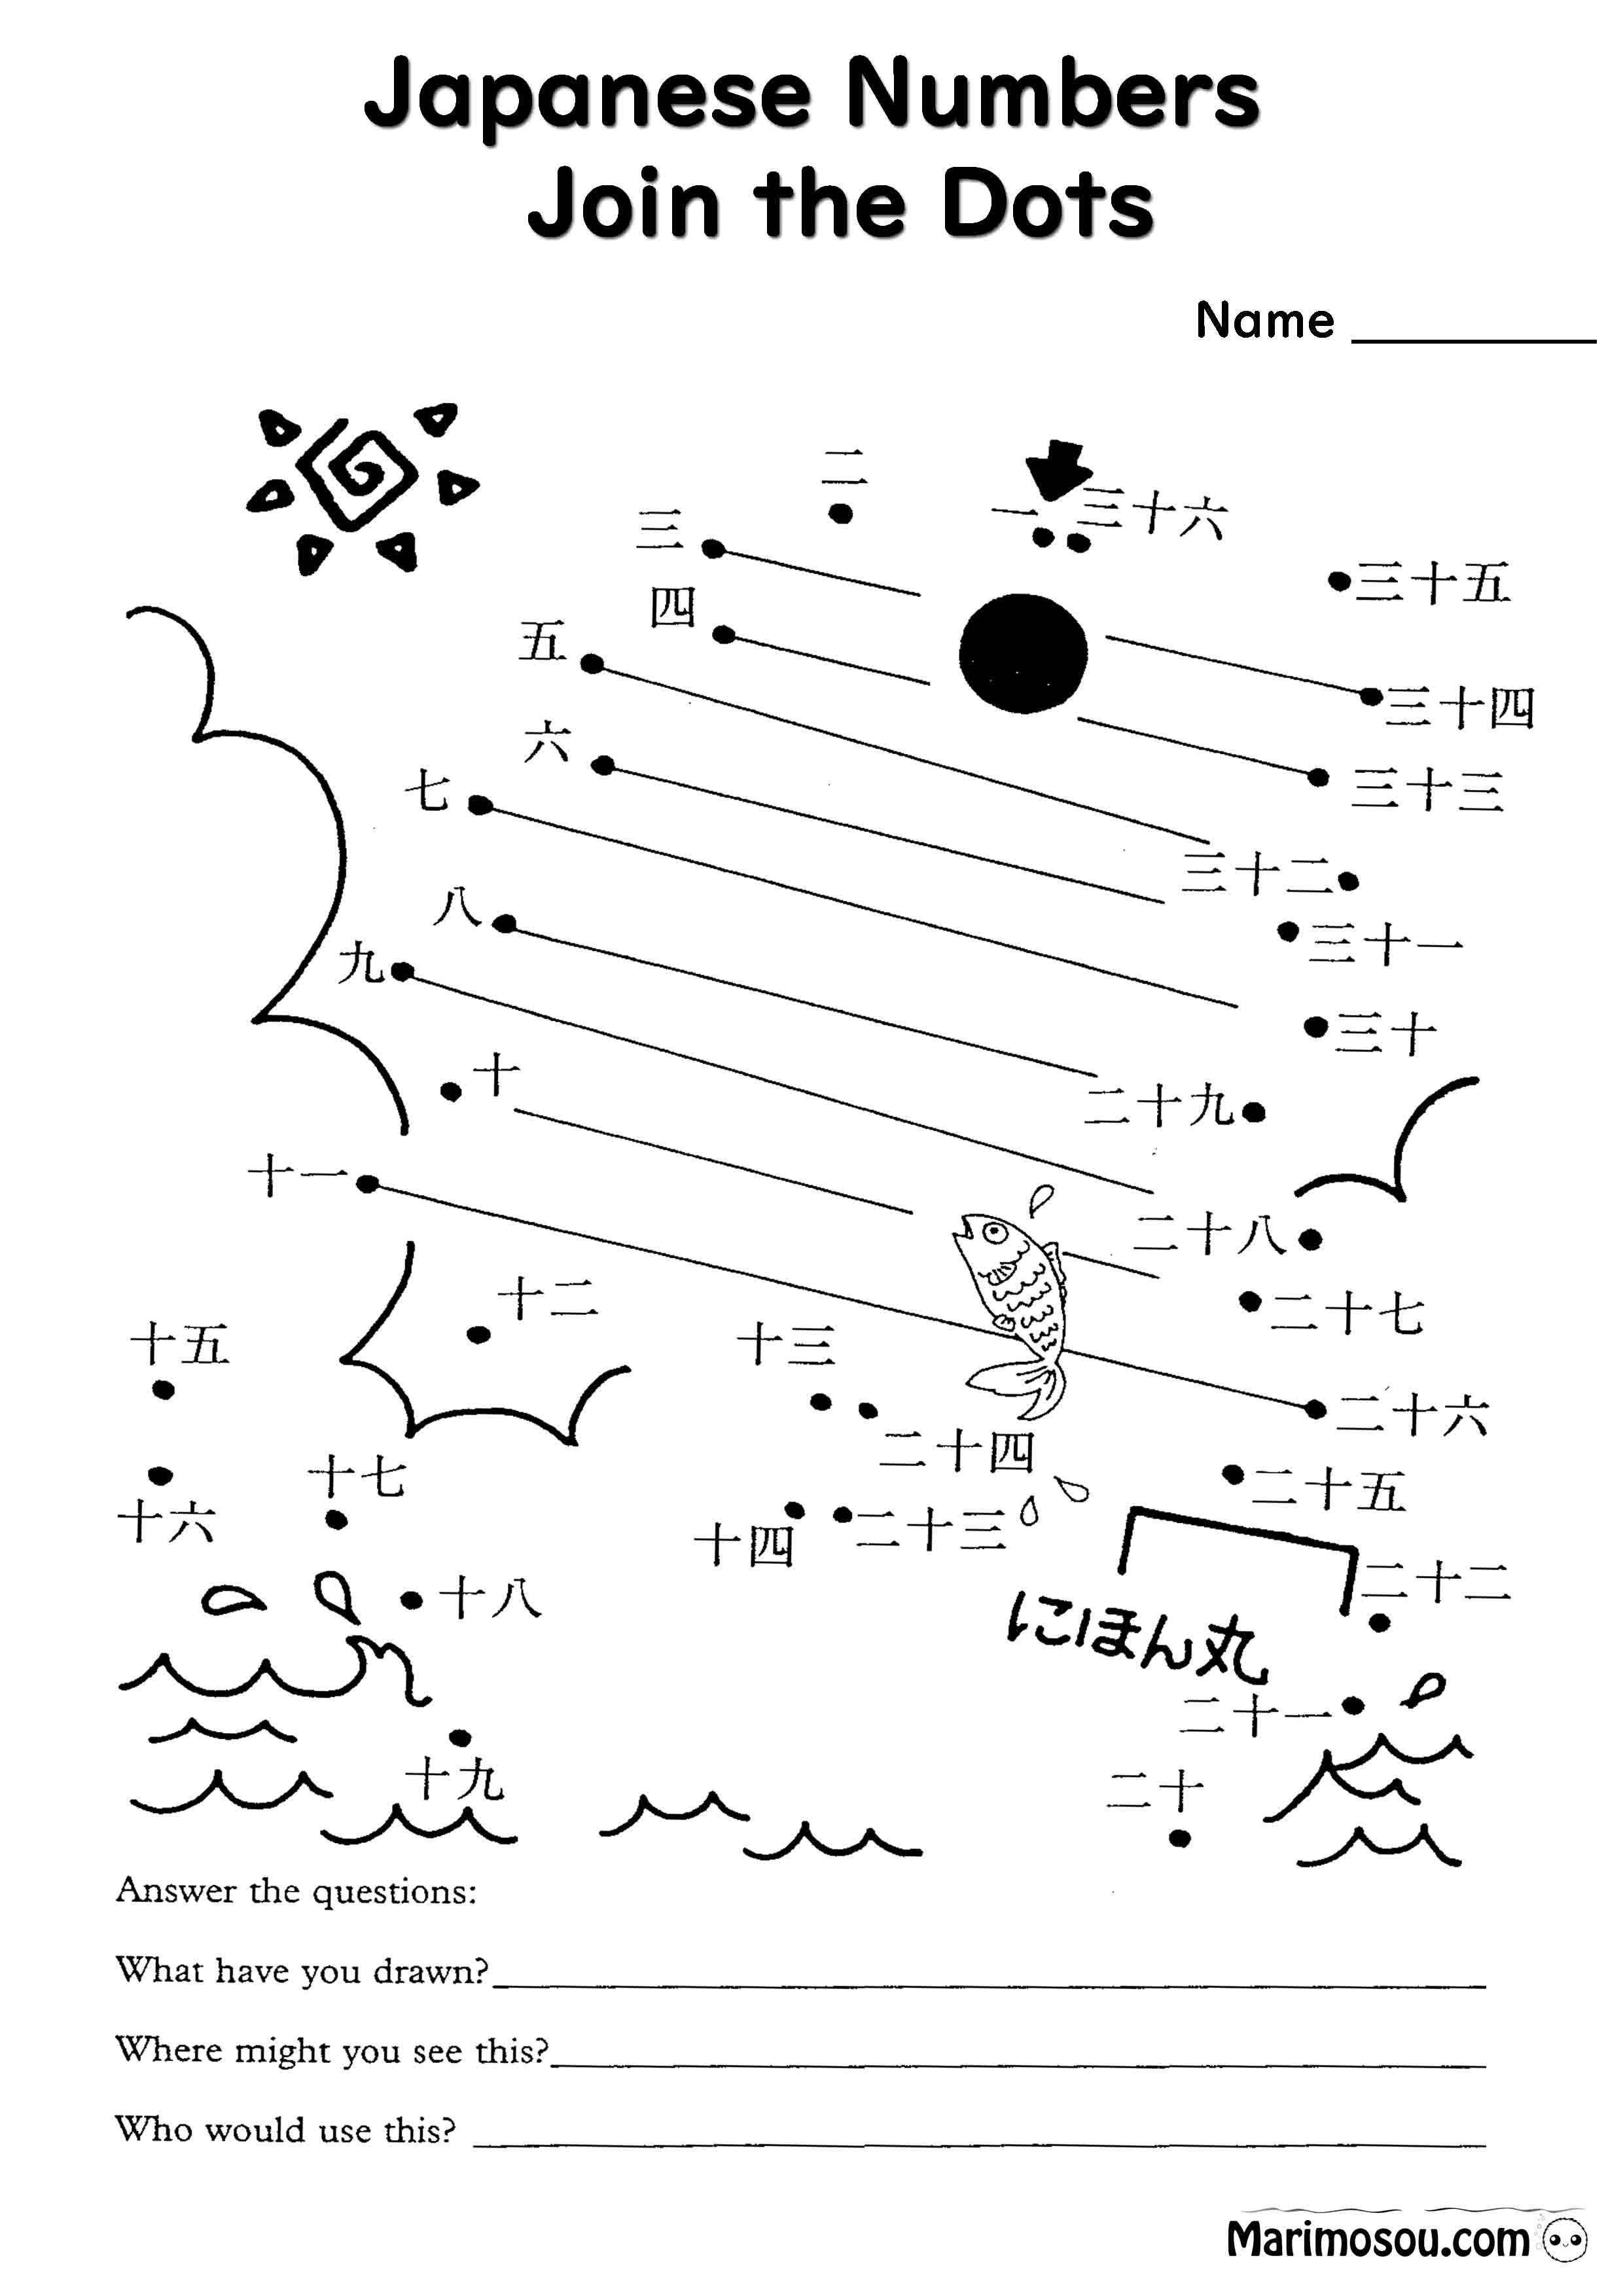 Japanese Numbers Join The Dots Japanese Language Lessons Japanese Kanji Japanese Japanese worksheets for kindergarten